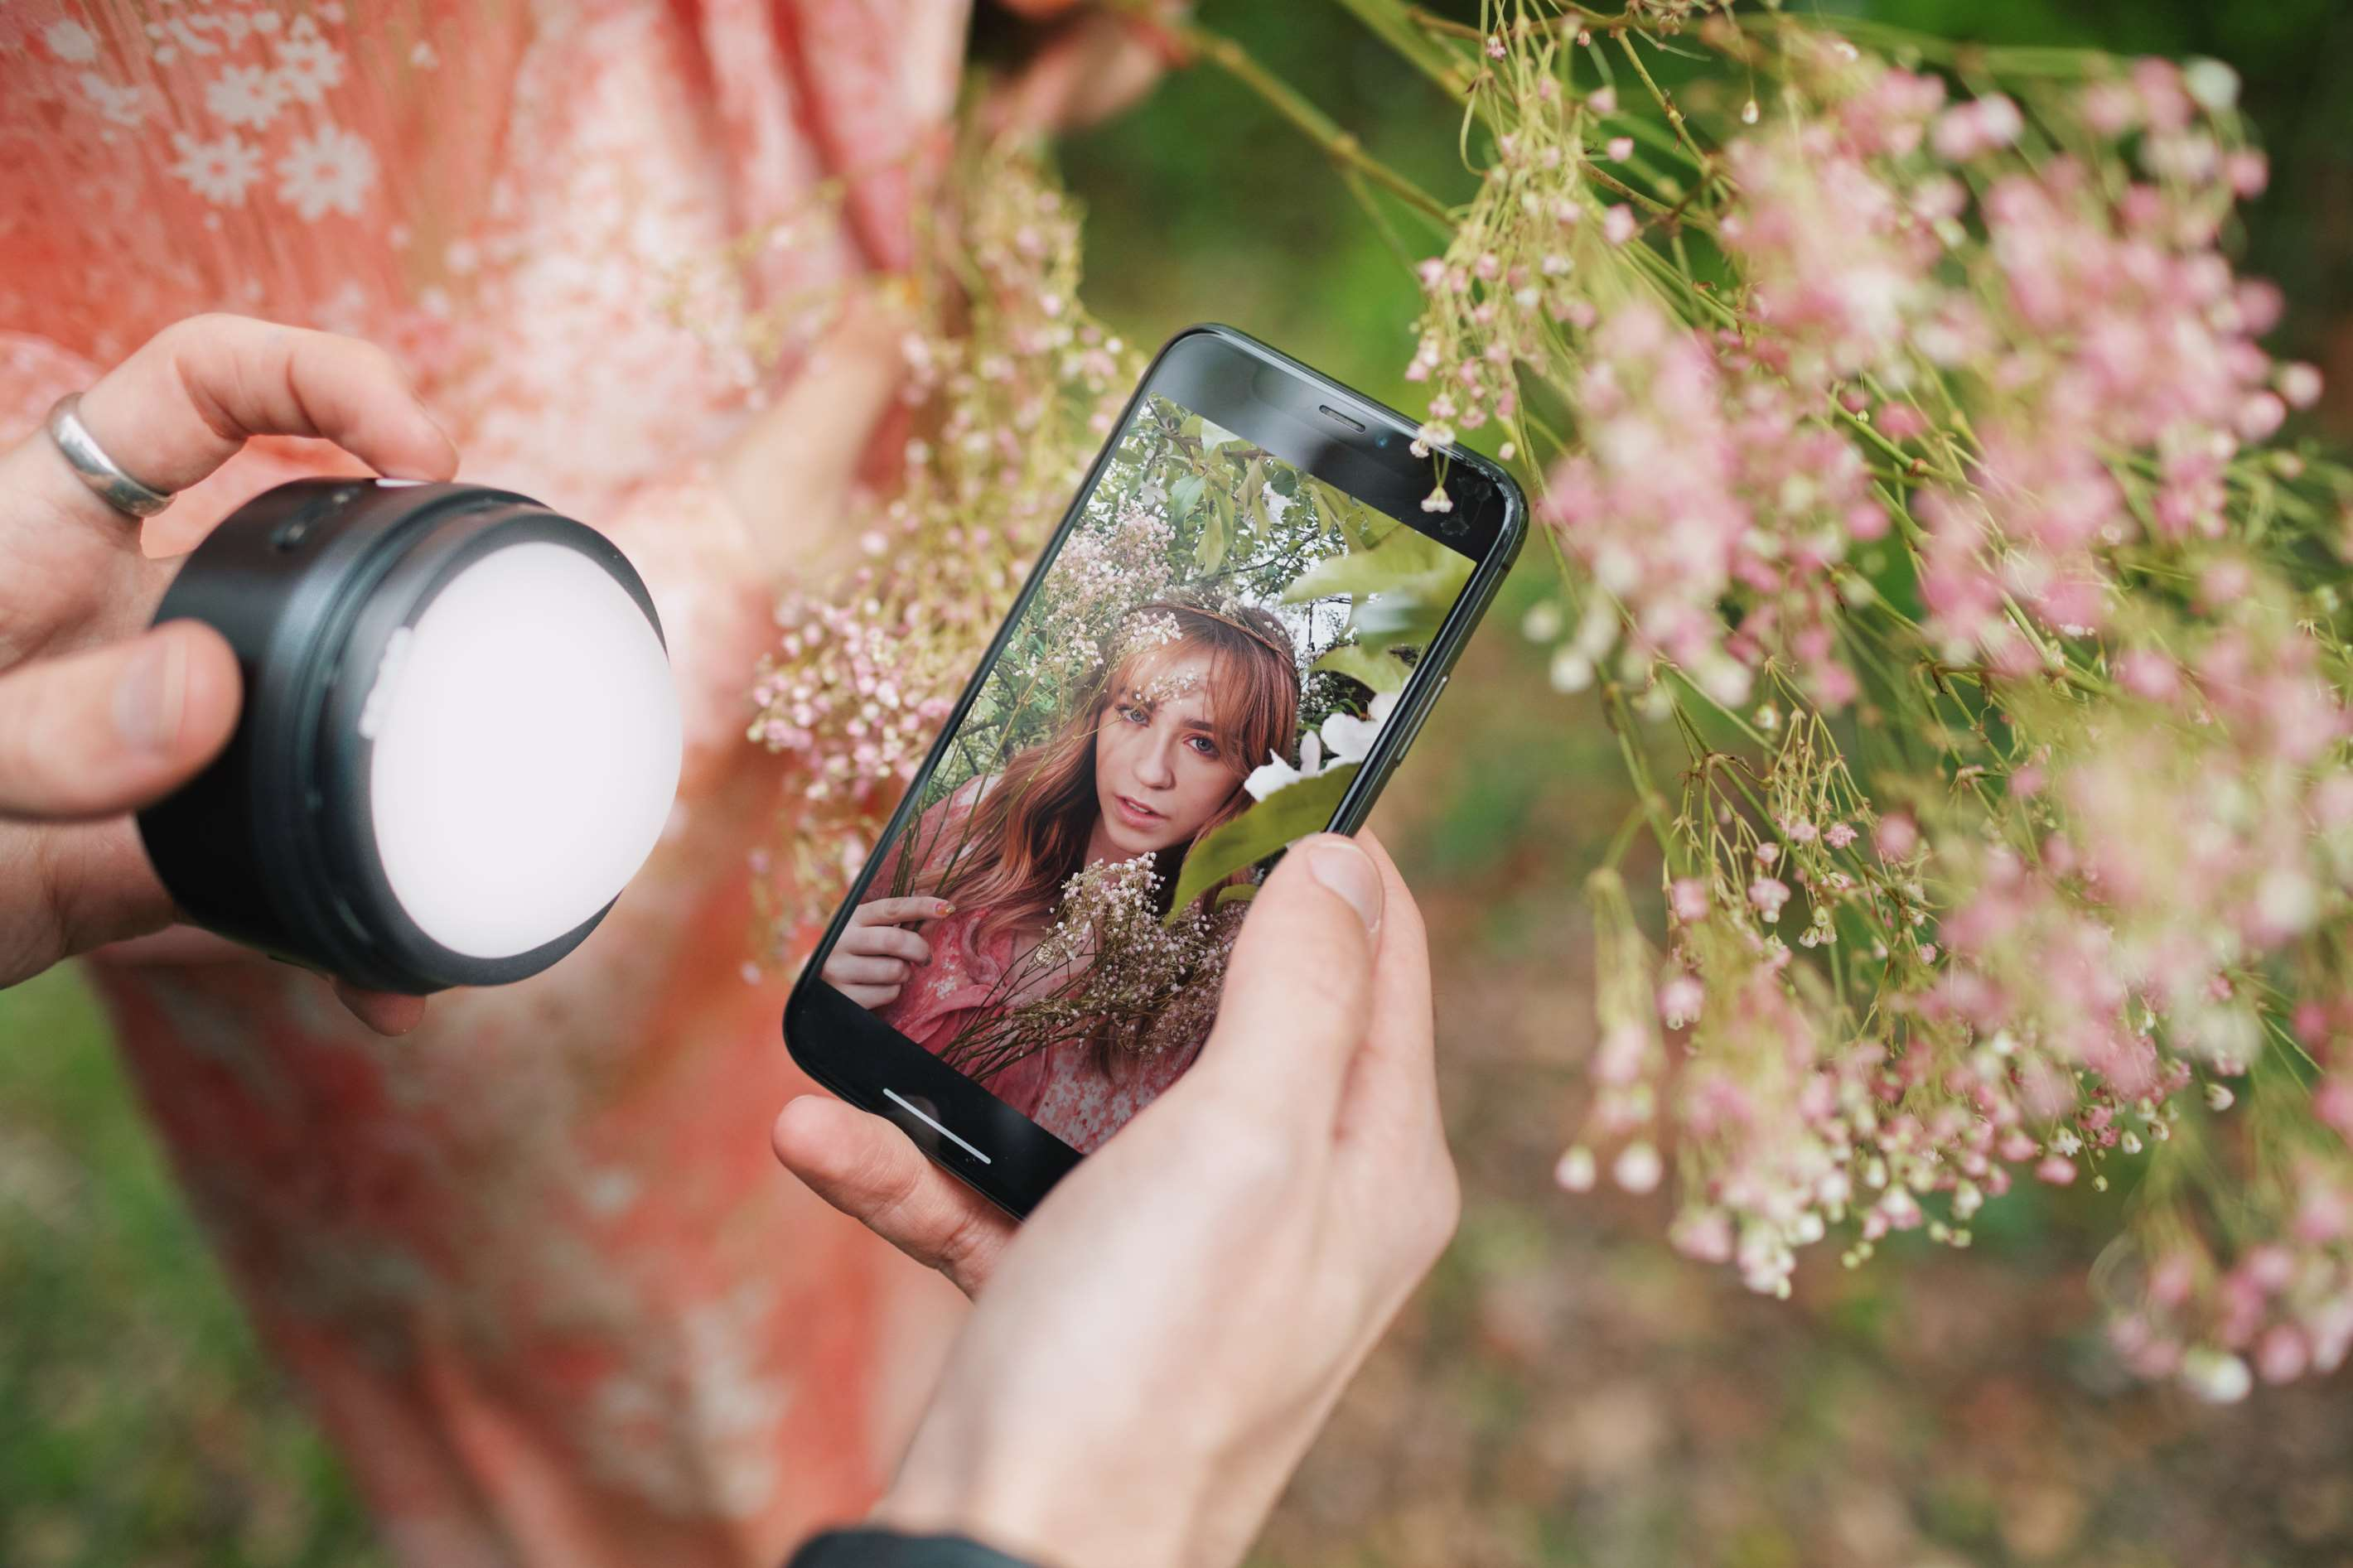 Hands holding Profoto C1 light & smartphone displaying photo of model with flowers, with same model & flowers in background